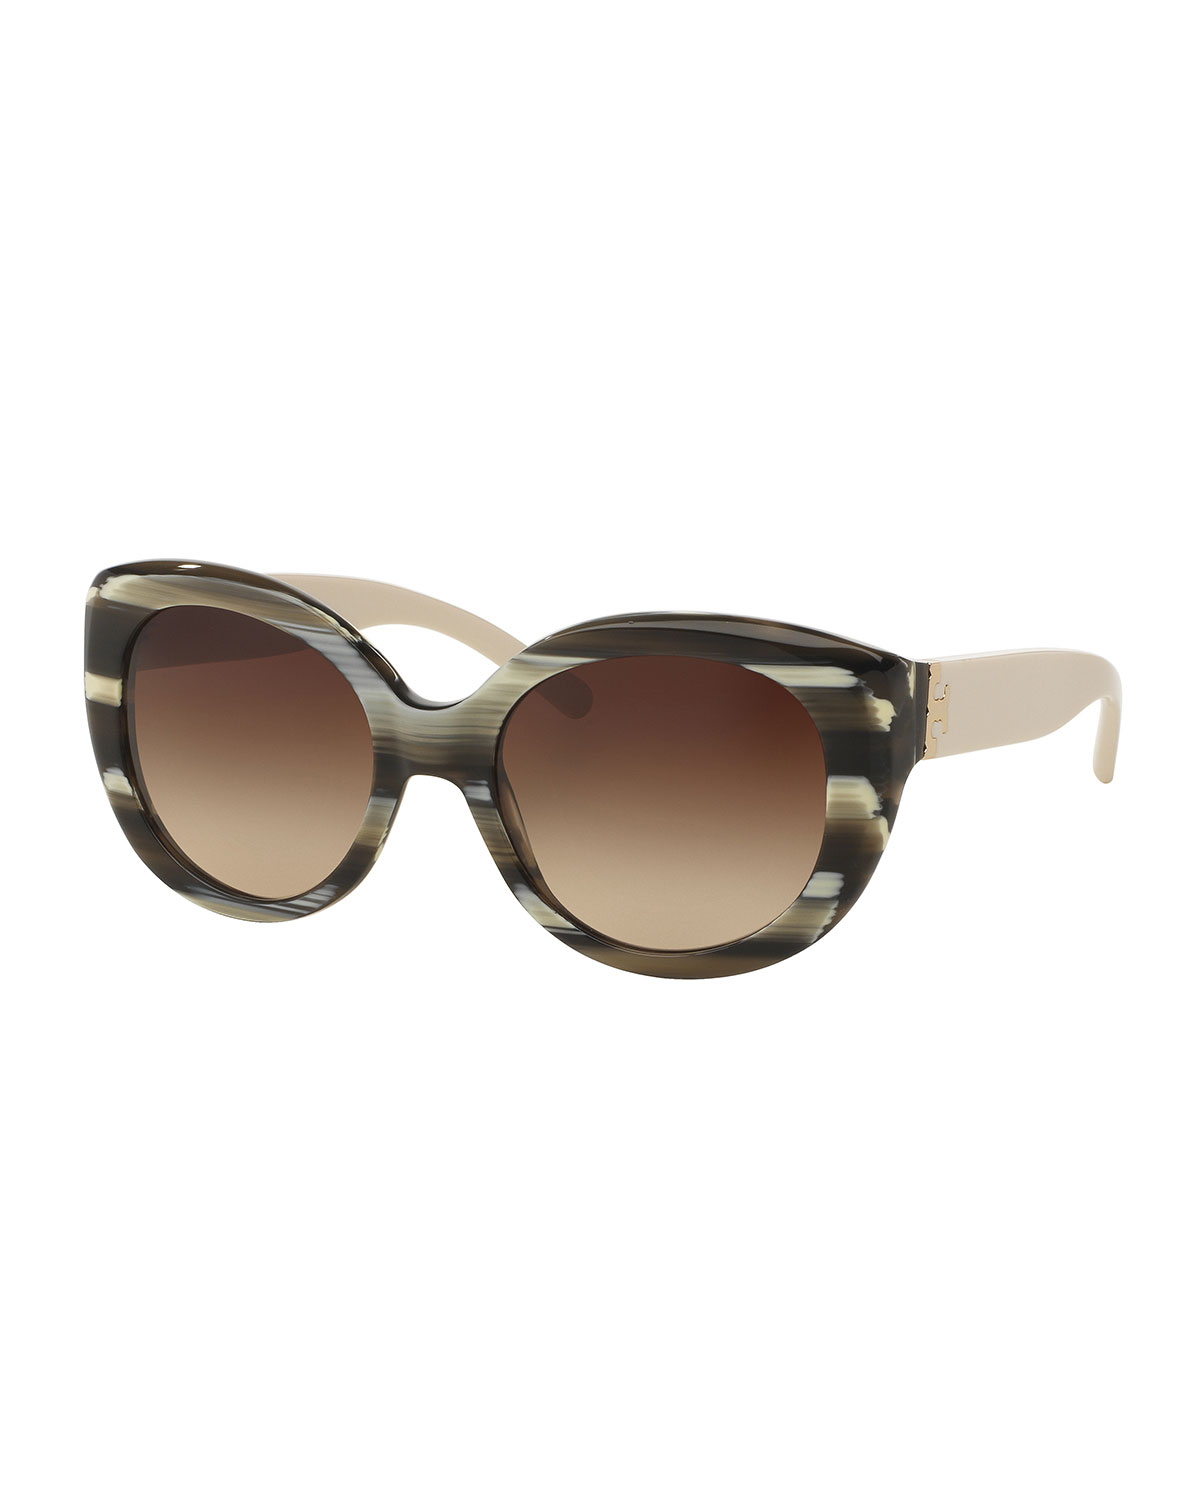 a7a46f2e96 Tory Burch Two-Tone Streaked Cat-Eye Sunglasses